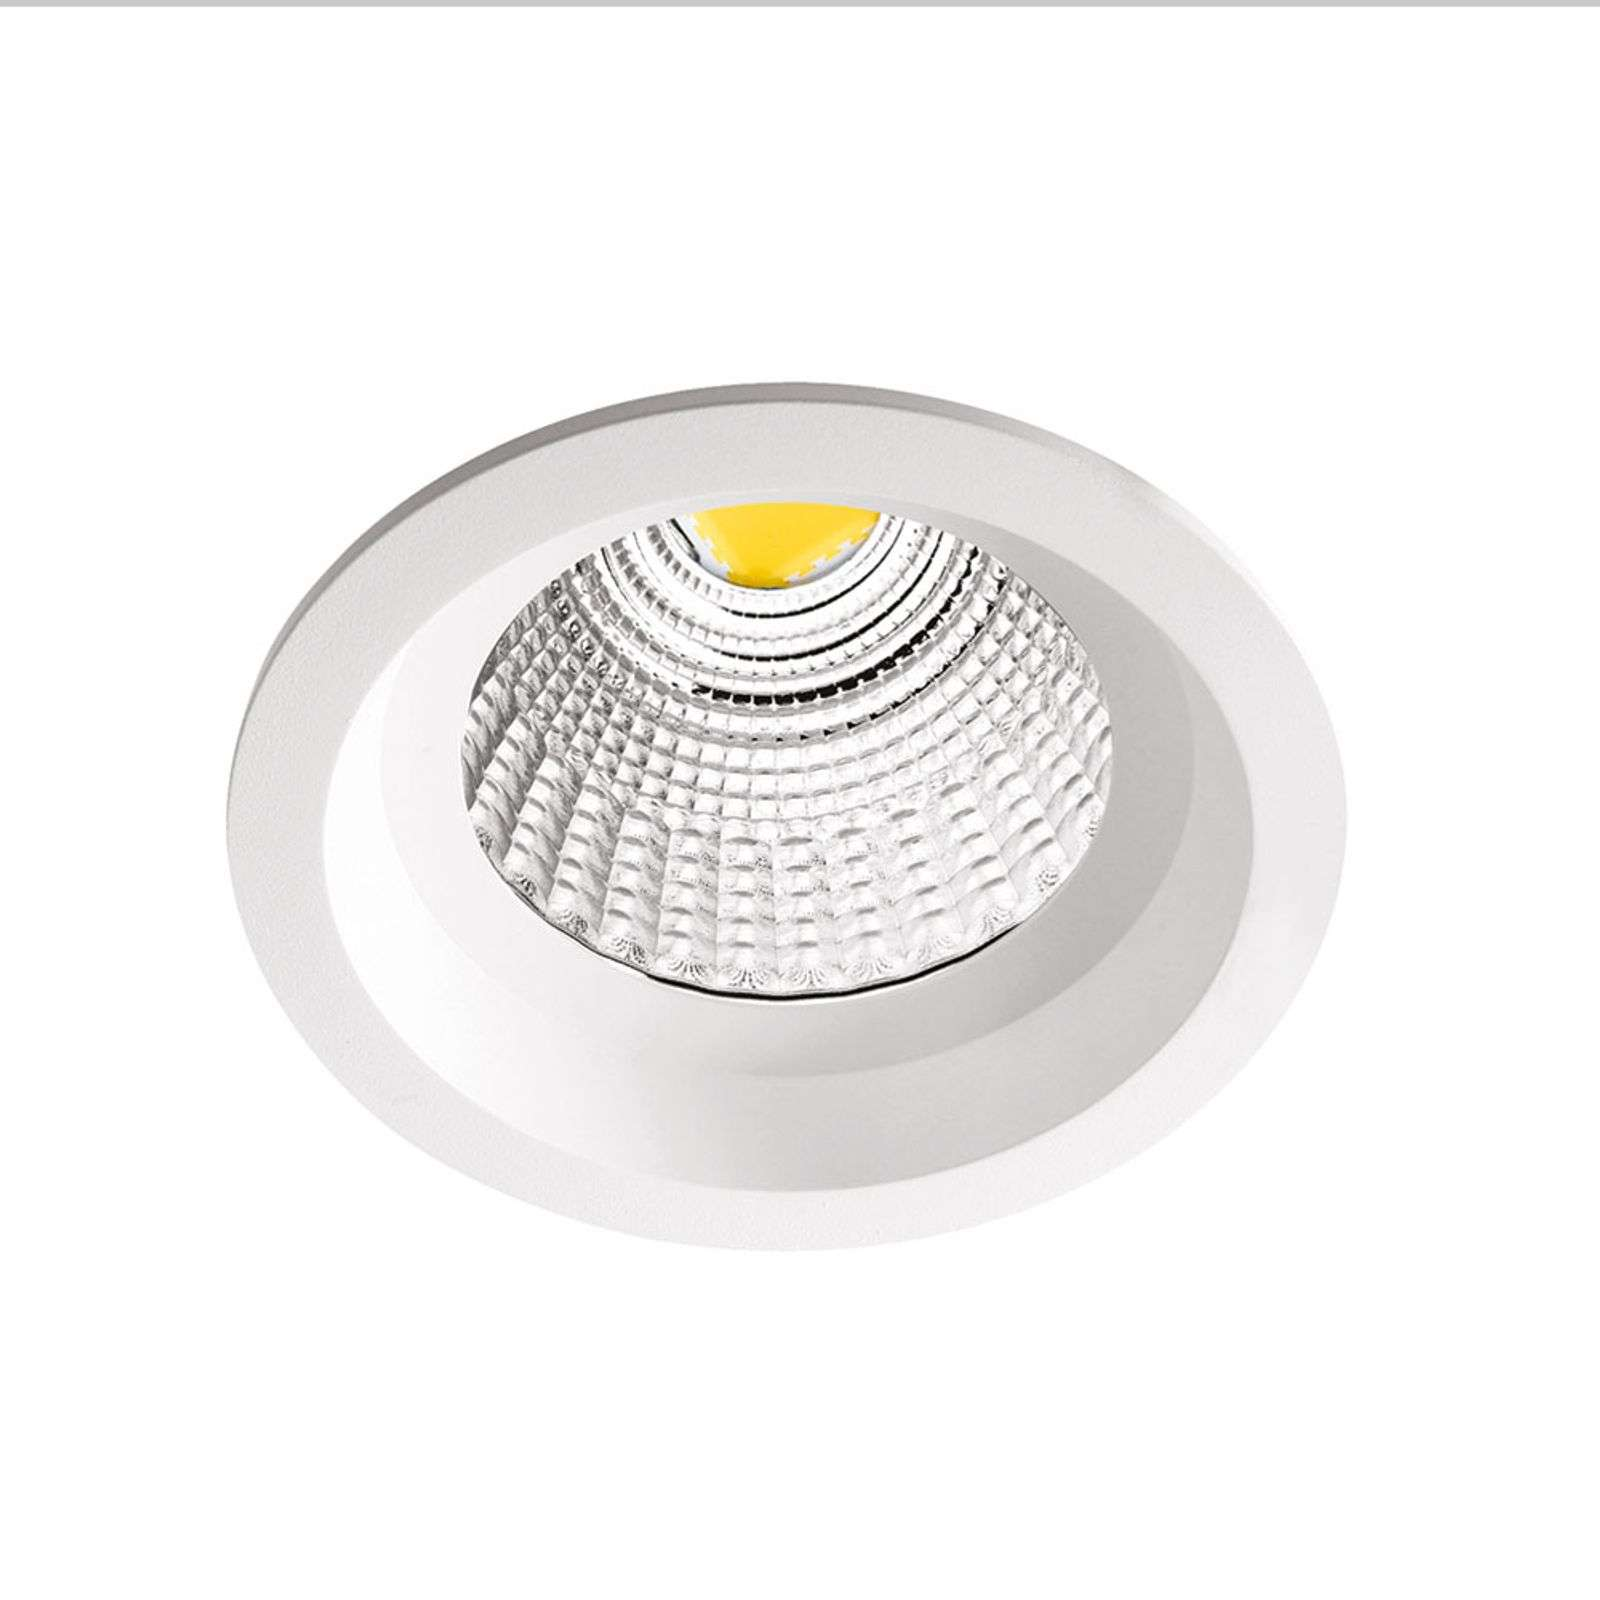 Réflecteur Wide Flood - spot encastré LED NV417 bc